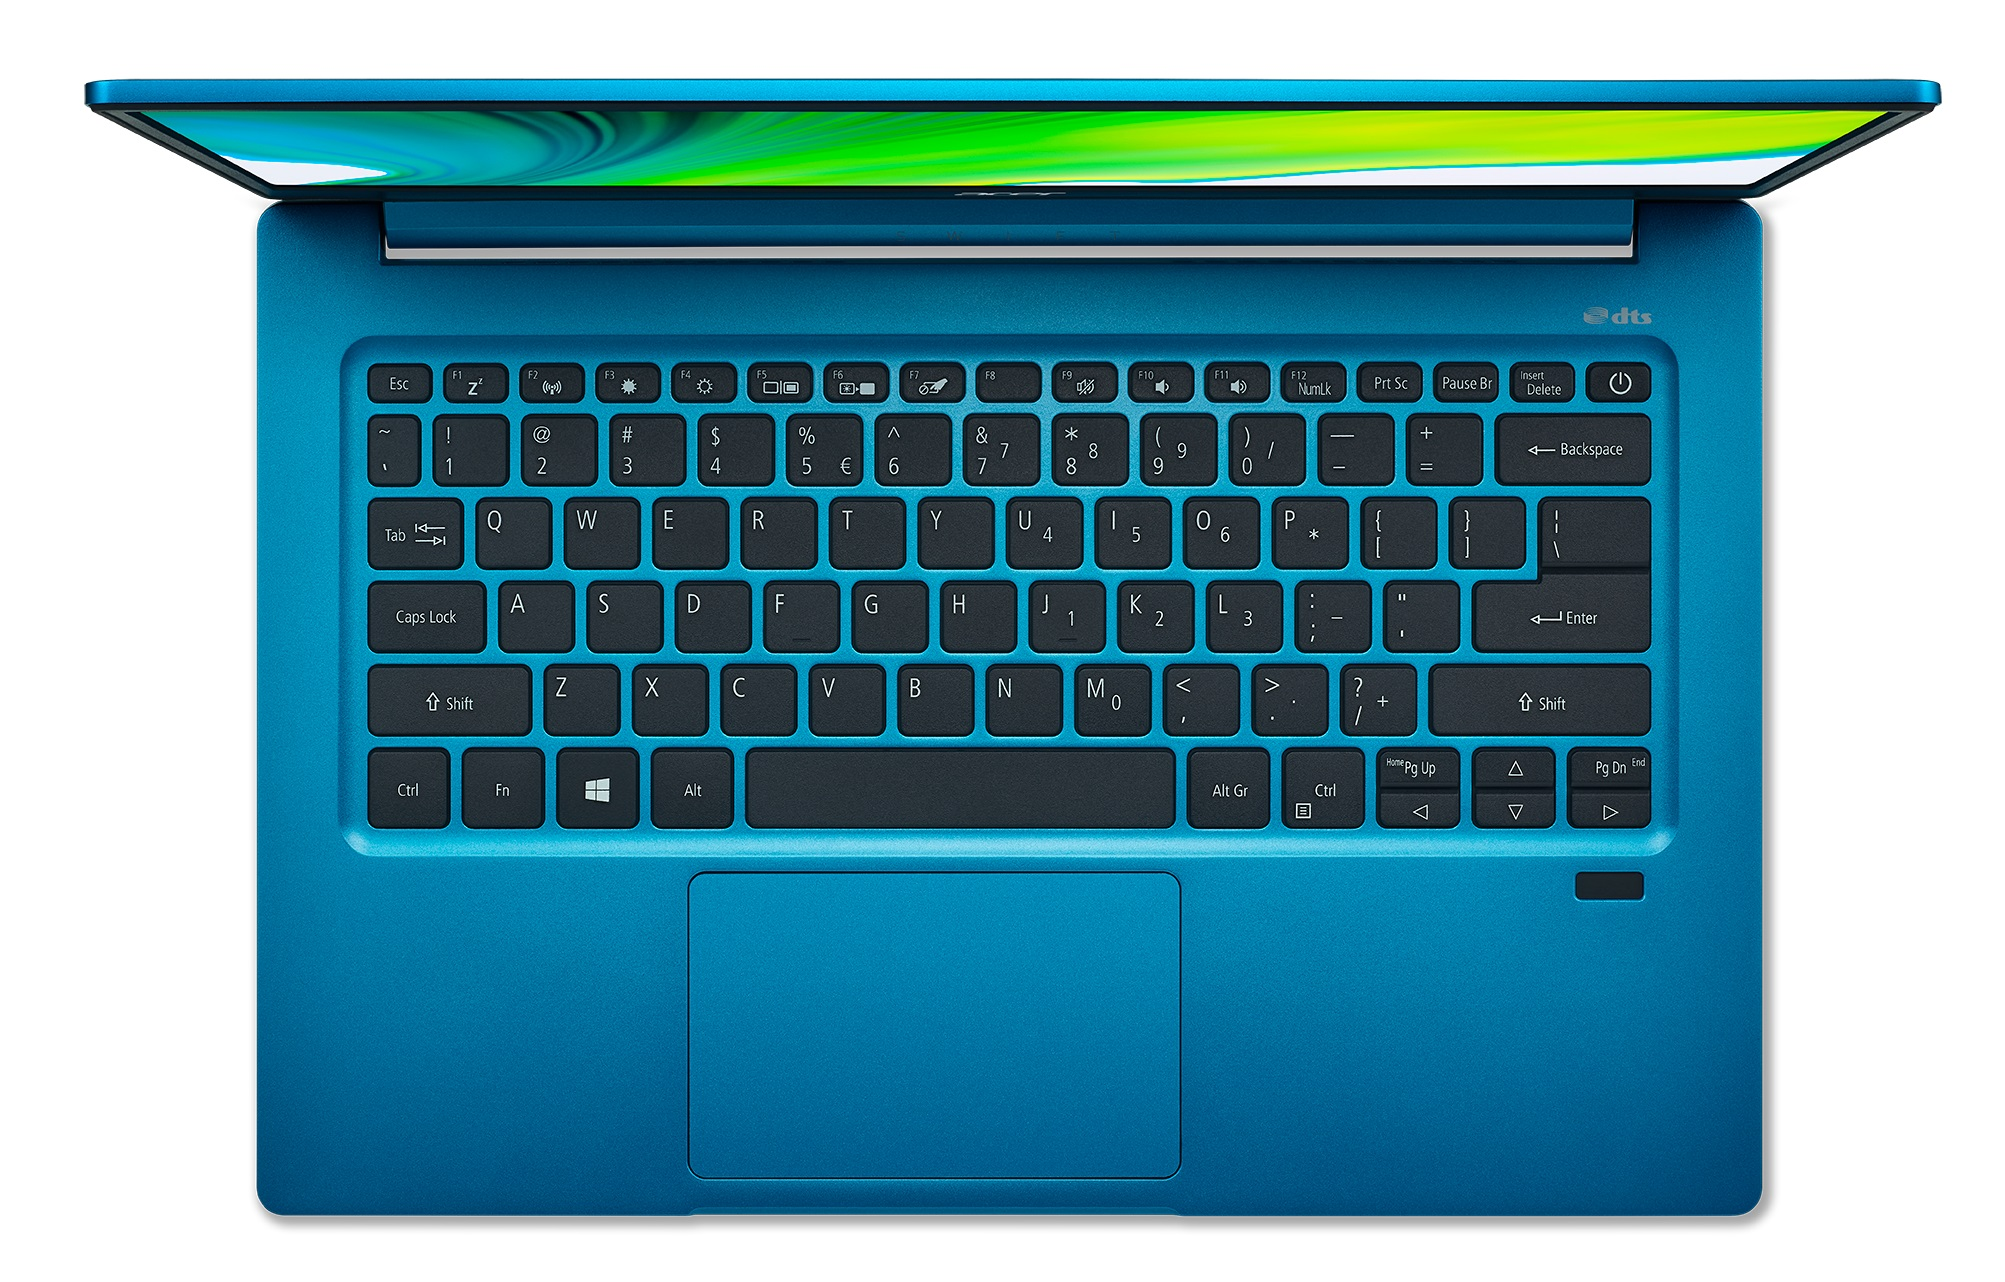 "ACER Swift 3 Aqua Blue (NX.A0PEU.005), 14.0"" IPS FHD (Intel Core i3-1115G4 2xCore, 1.7-4.1GHz, 8GB(1x8) LPDDR4 RAM, 256GB PCIe NVMe SSD, Intel UHD Graphics, WiFi-AX/BT 5.0, FPR, Backlit KB, 3cell, HD Webcam, RUS, No OS, 1.20kg, 15.95mm)"